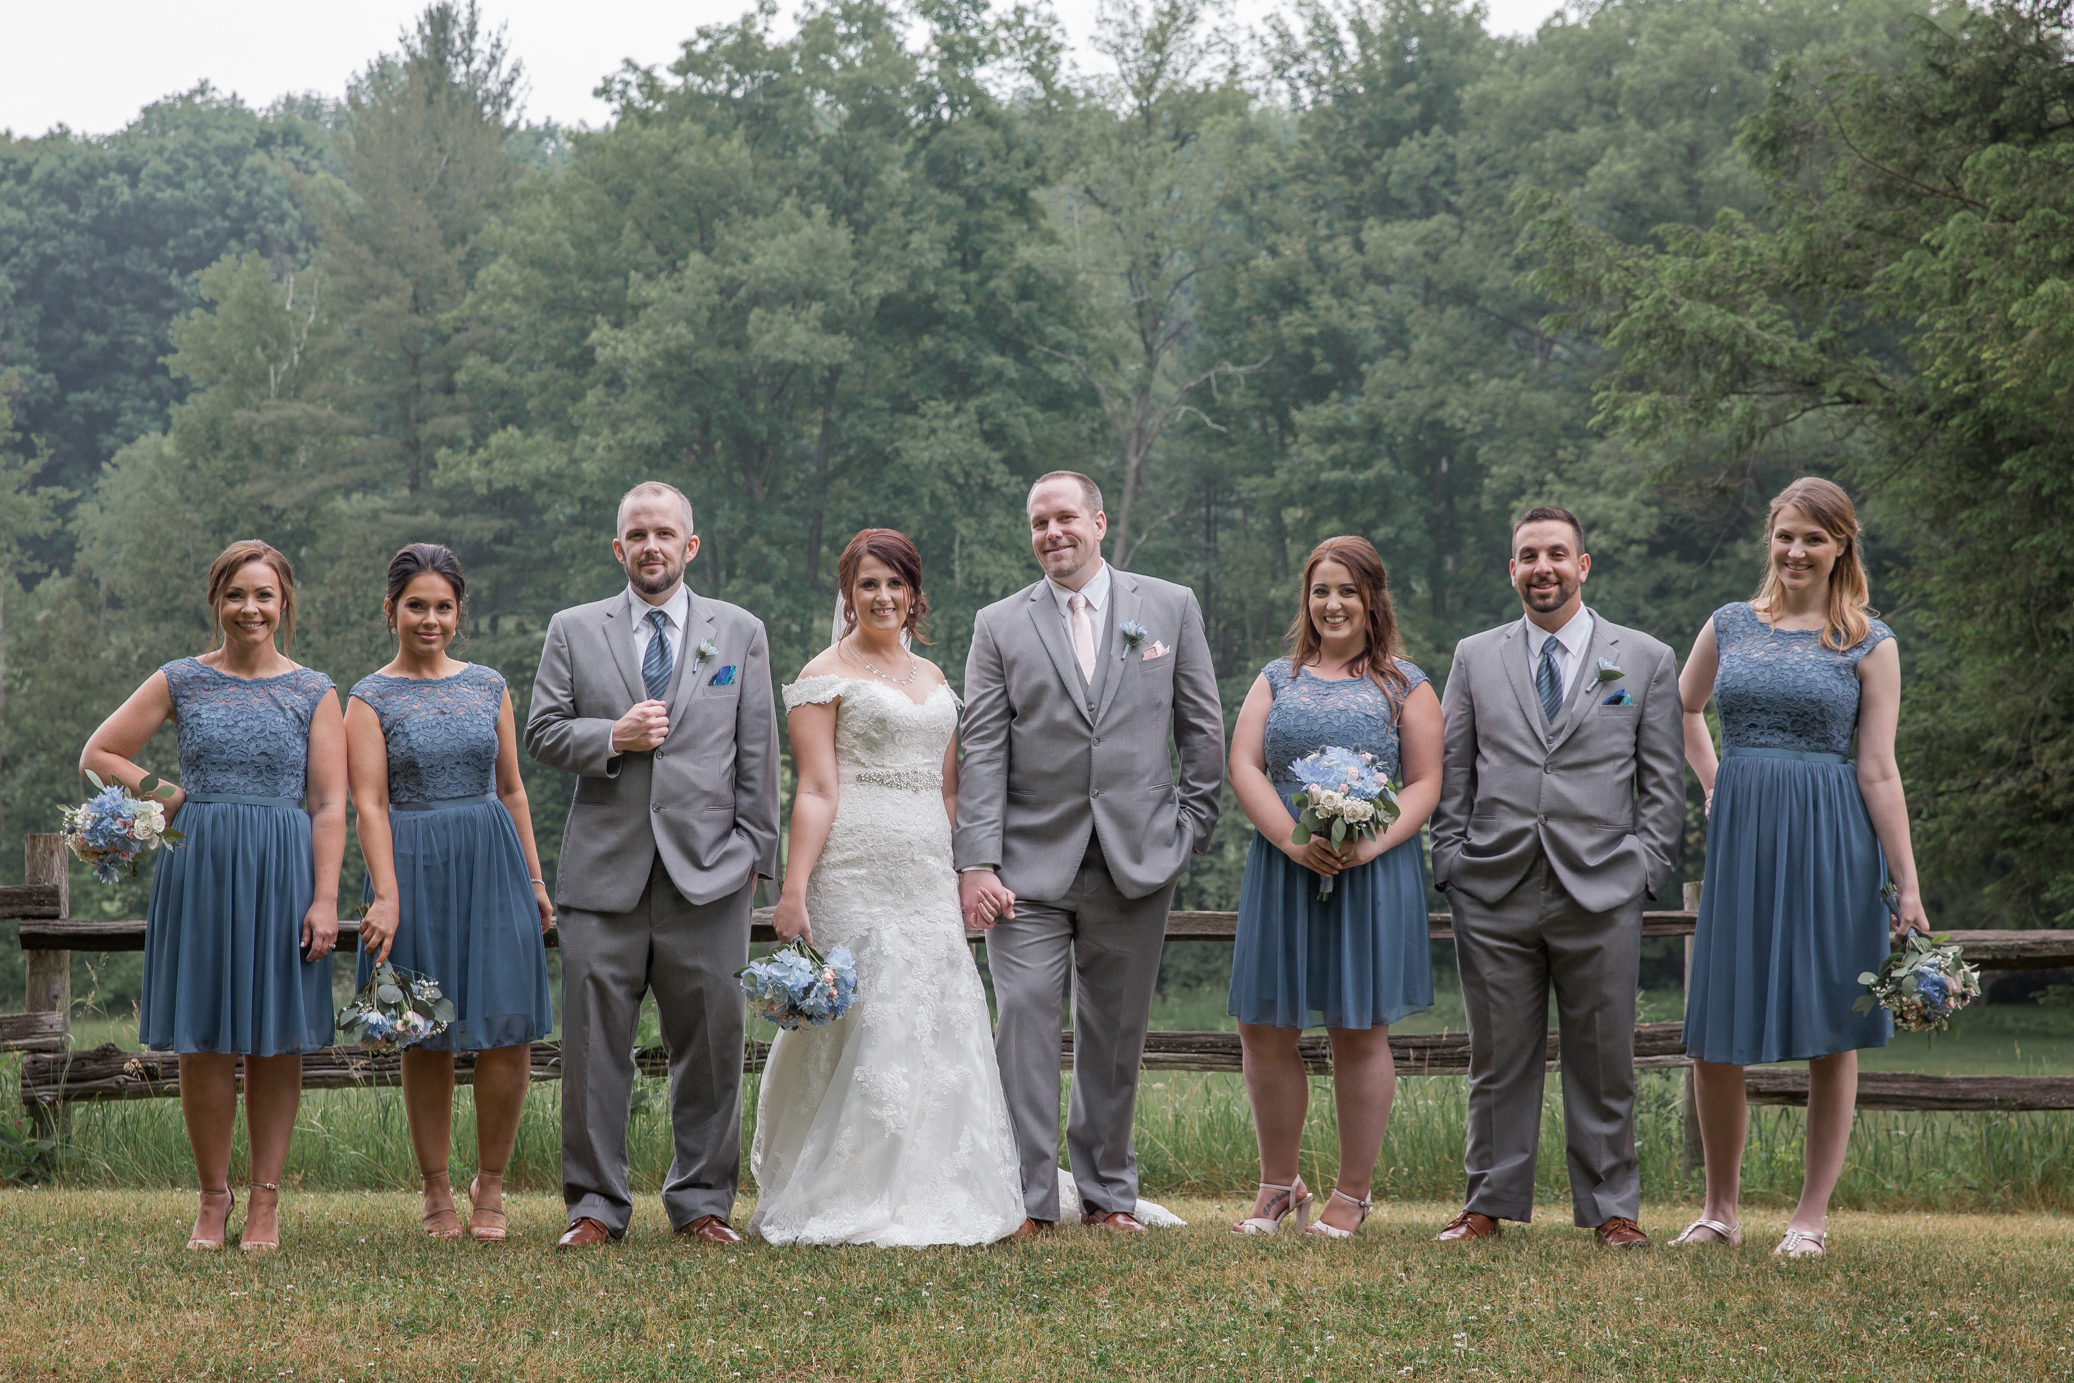 Pheasant_Run_Summer_Wedding_0015